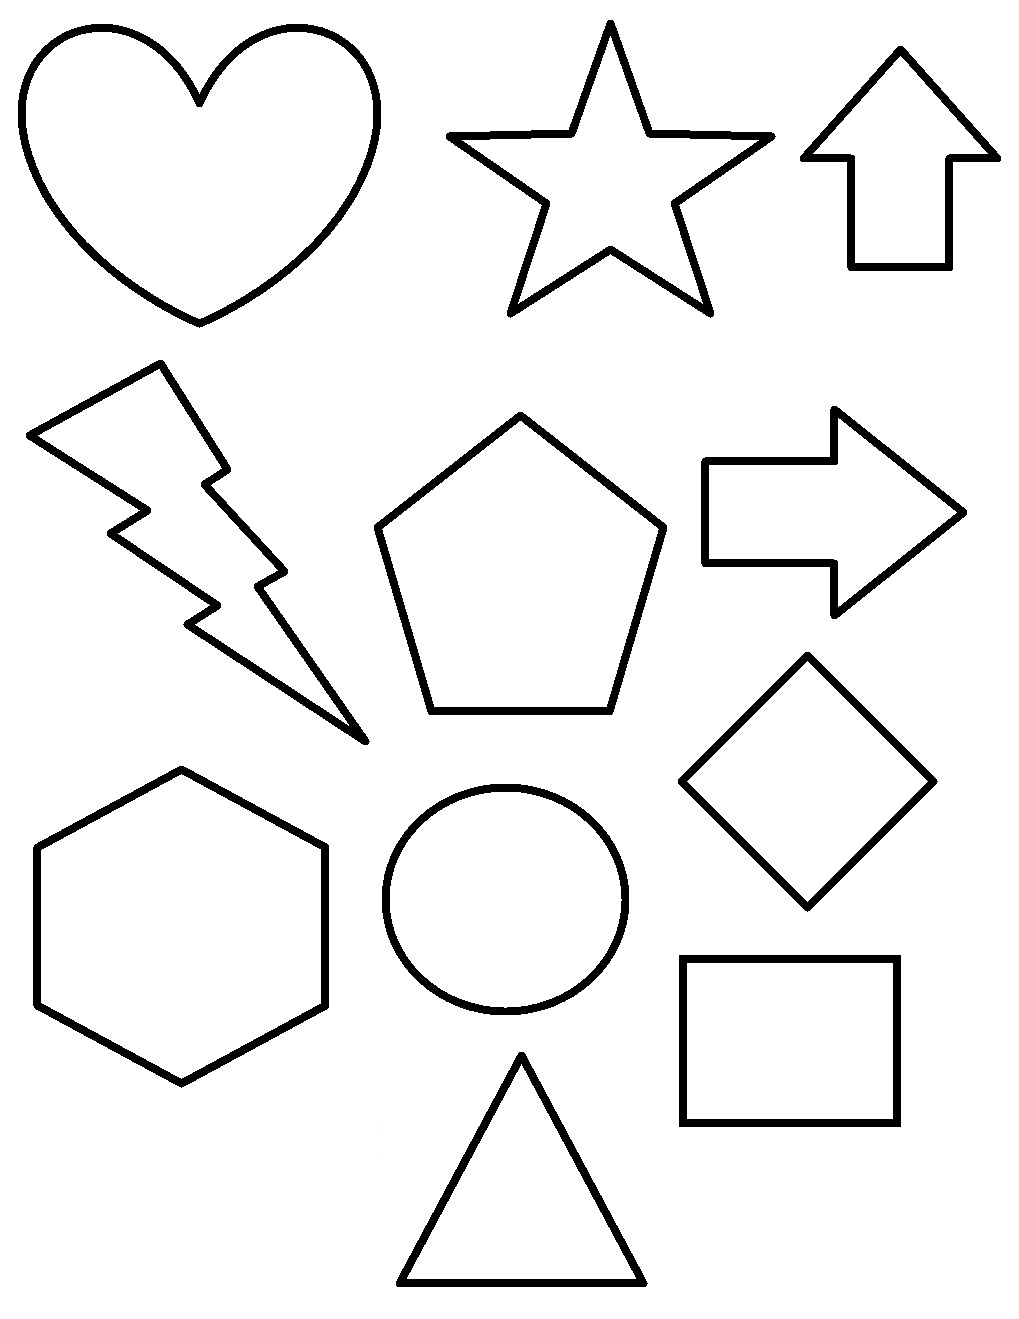 4 Images of Printable Shape Coloring Pages